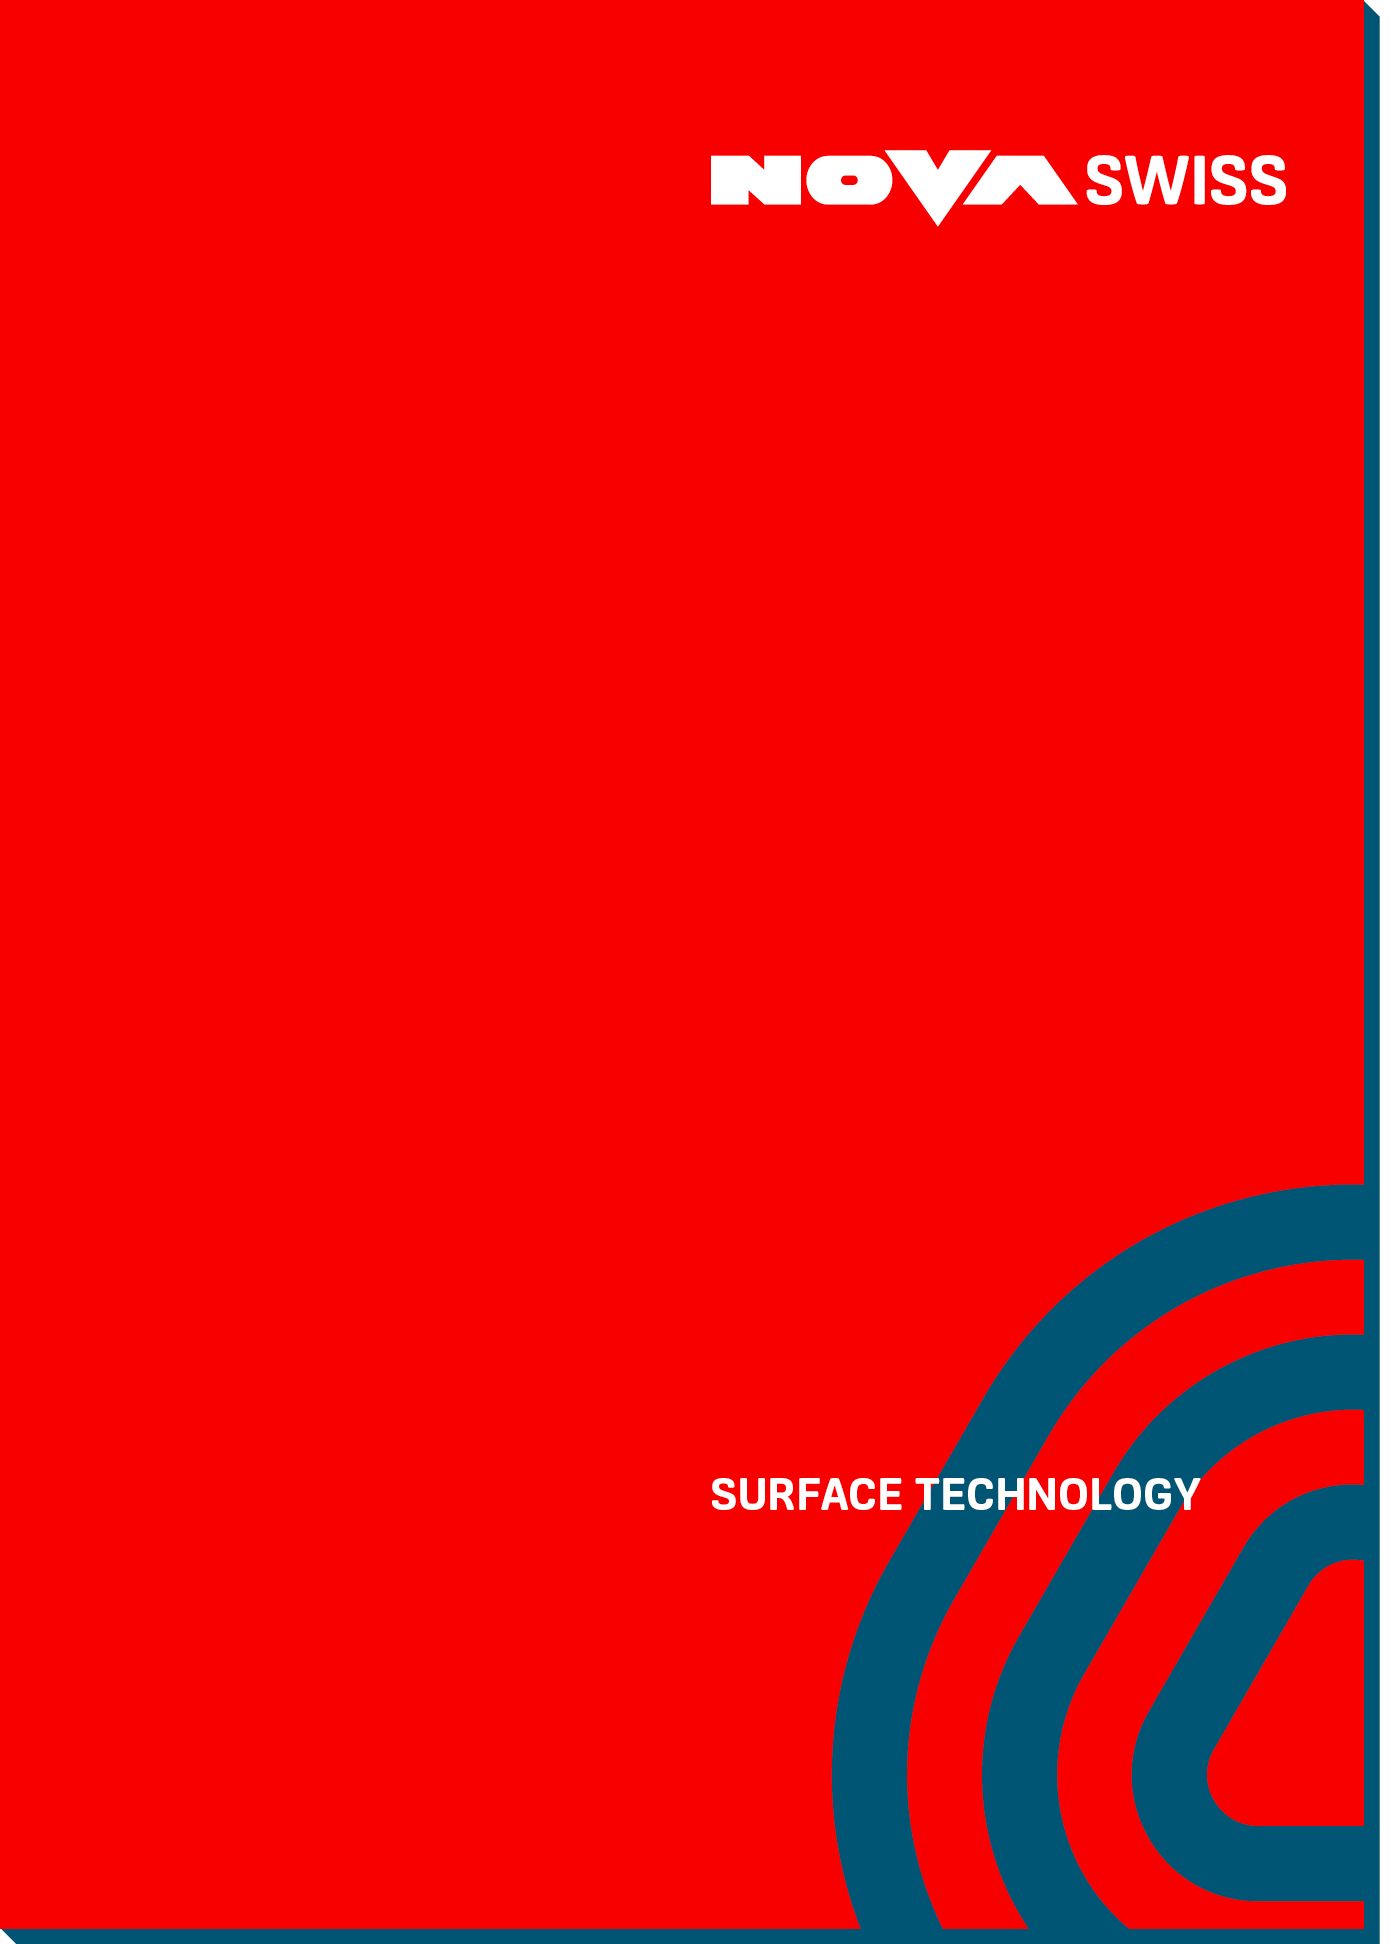 Download Surface Technology product brochure